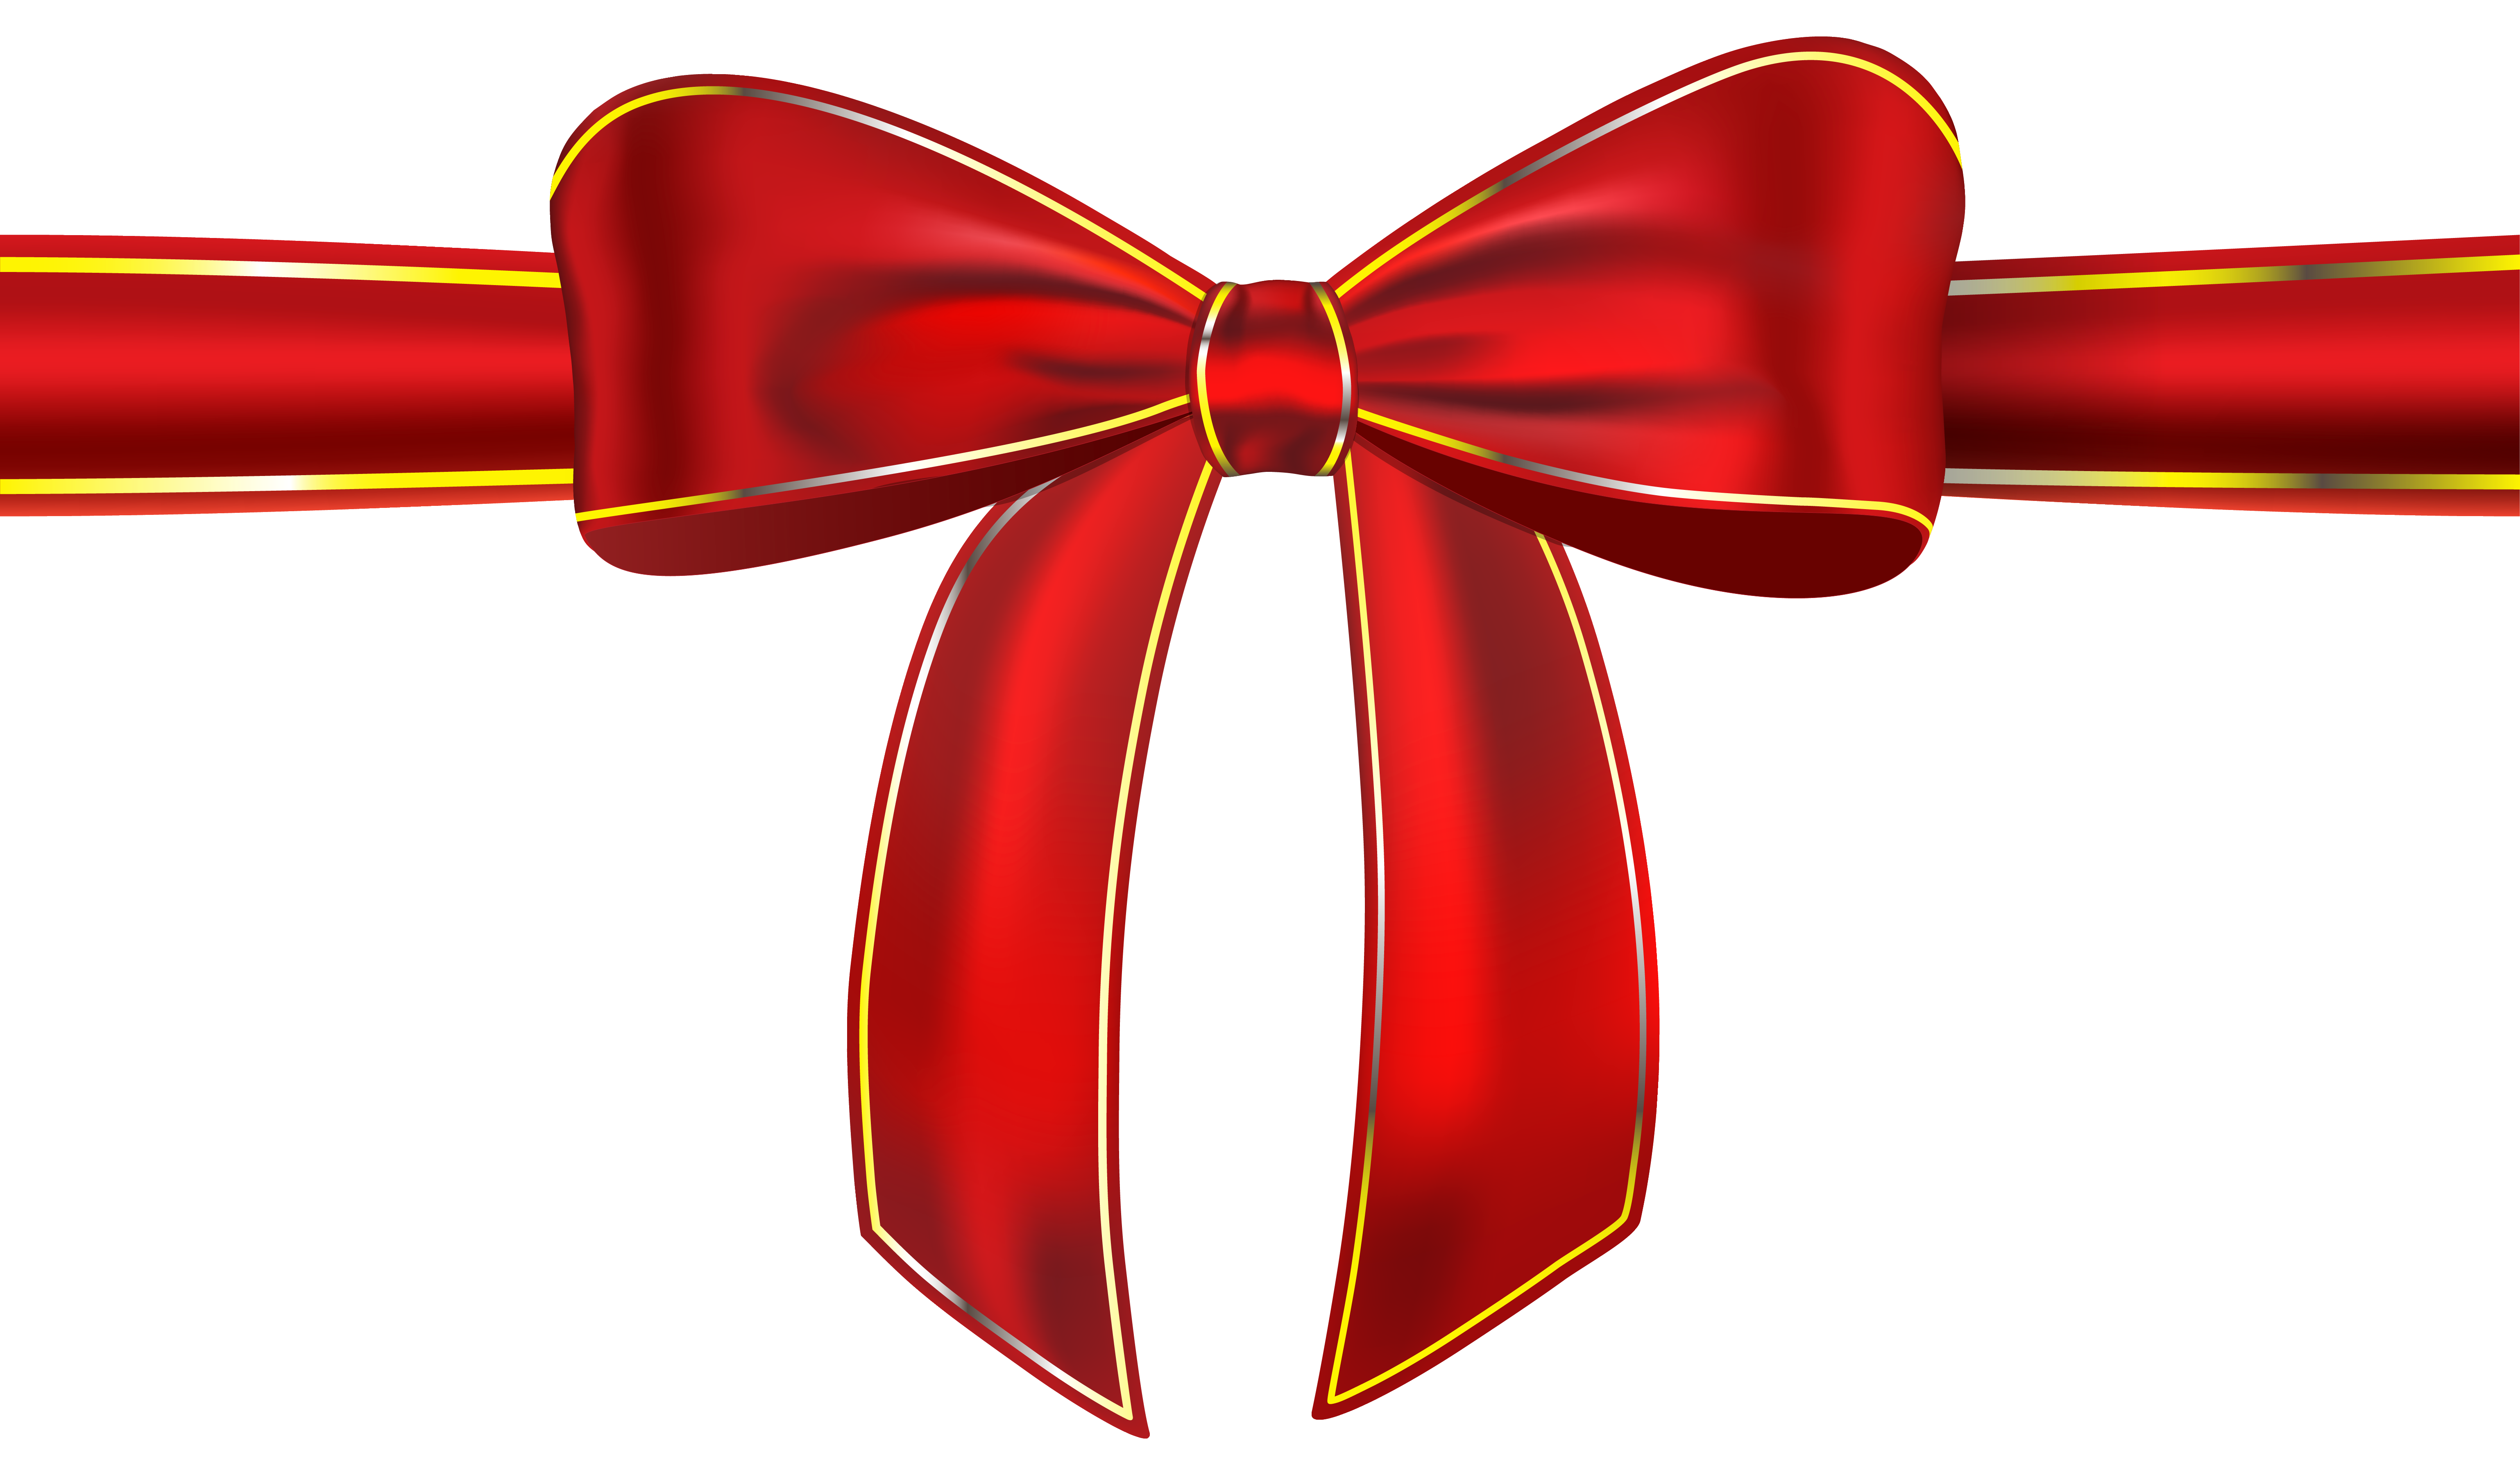 Bow Tie clipart gift bow Png clipart with red with